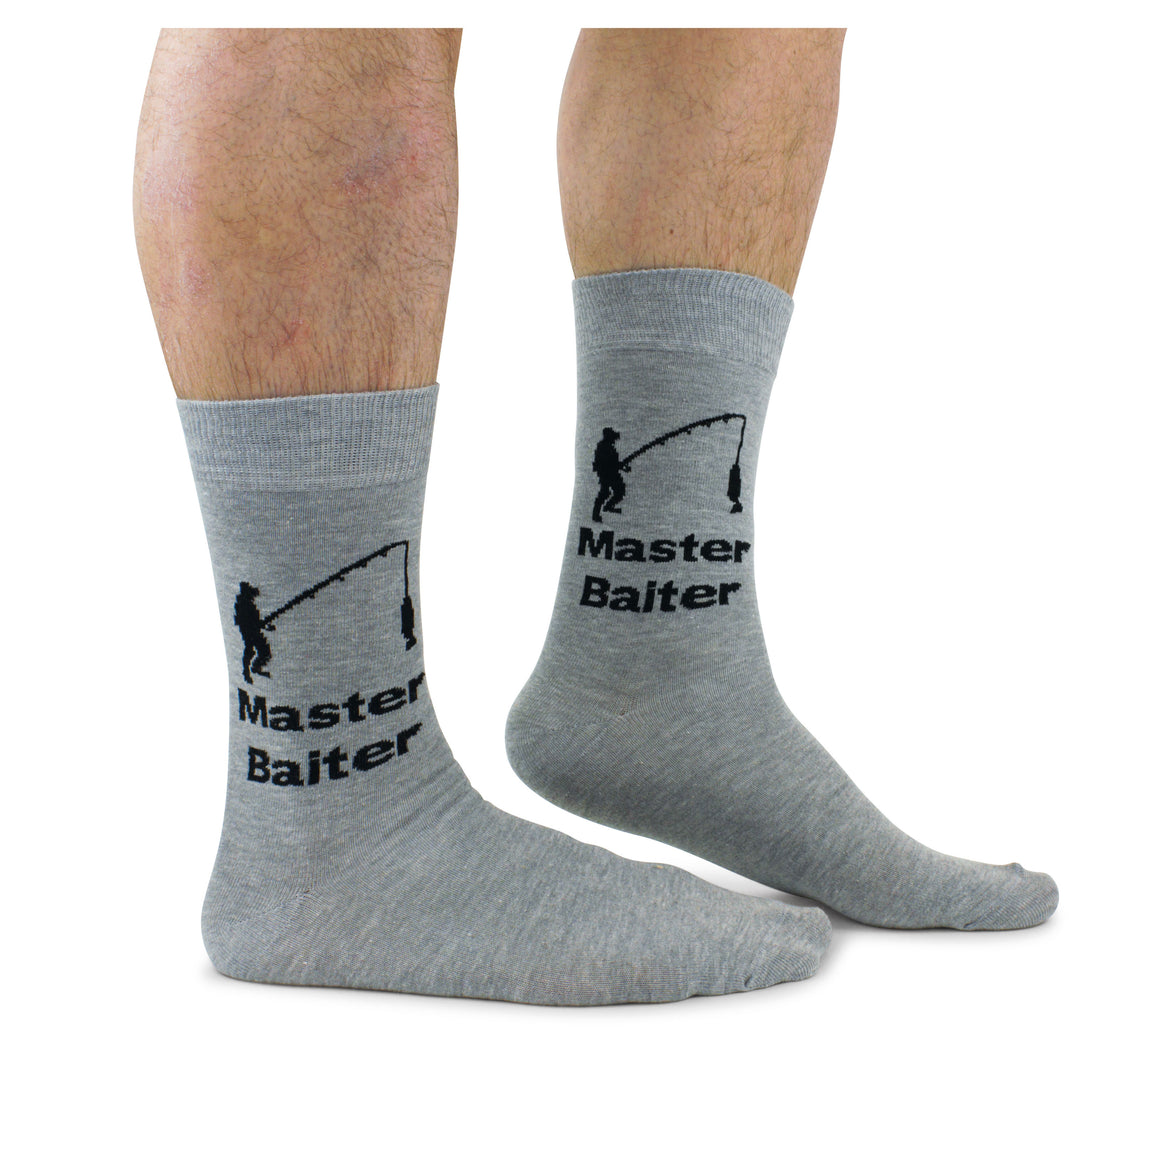 Cockney Spaniel Master Baiter Men's Socks - The Love Trees